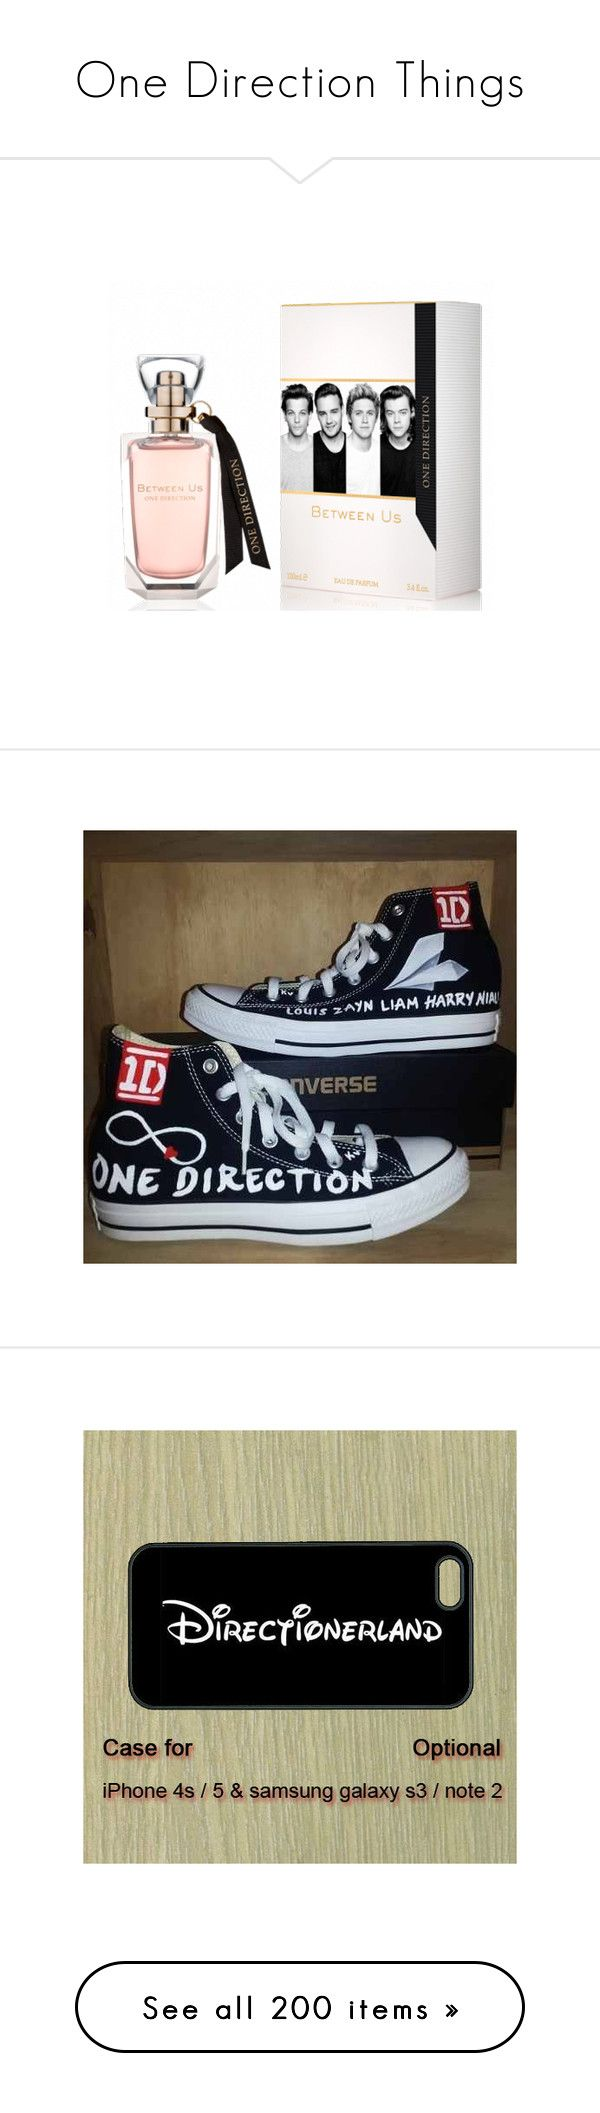 """One Direction Things"" by julili-99 ❤ liked on Polyvore featuring perfume, one direction, filler, shoes, converse, 1d, all star, accessories, tech accessories and phone cases"